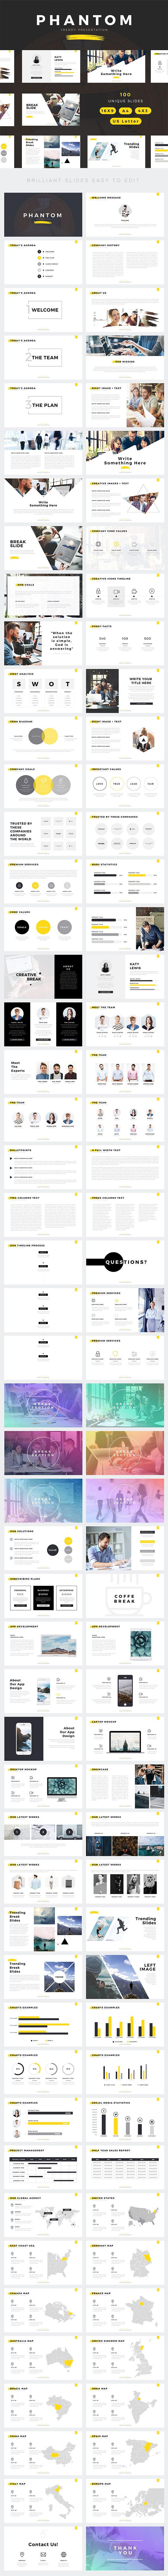 phantom modern powerpoint template creative powerpoint templates